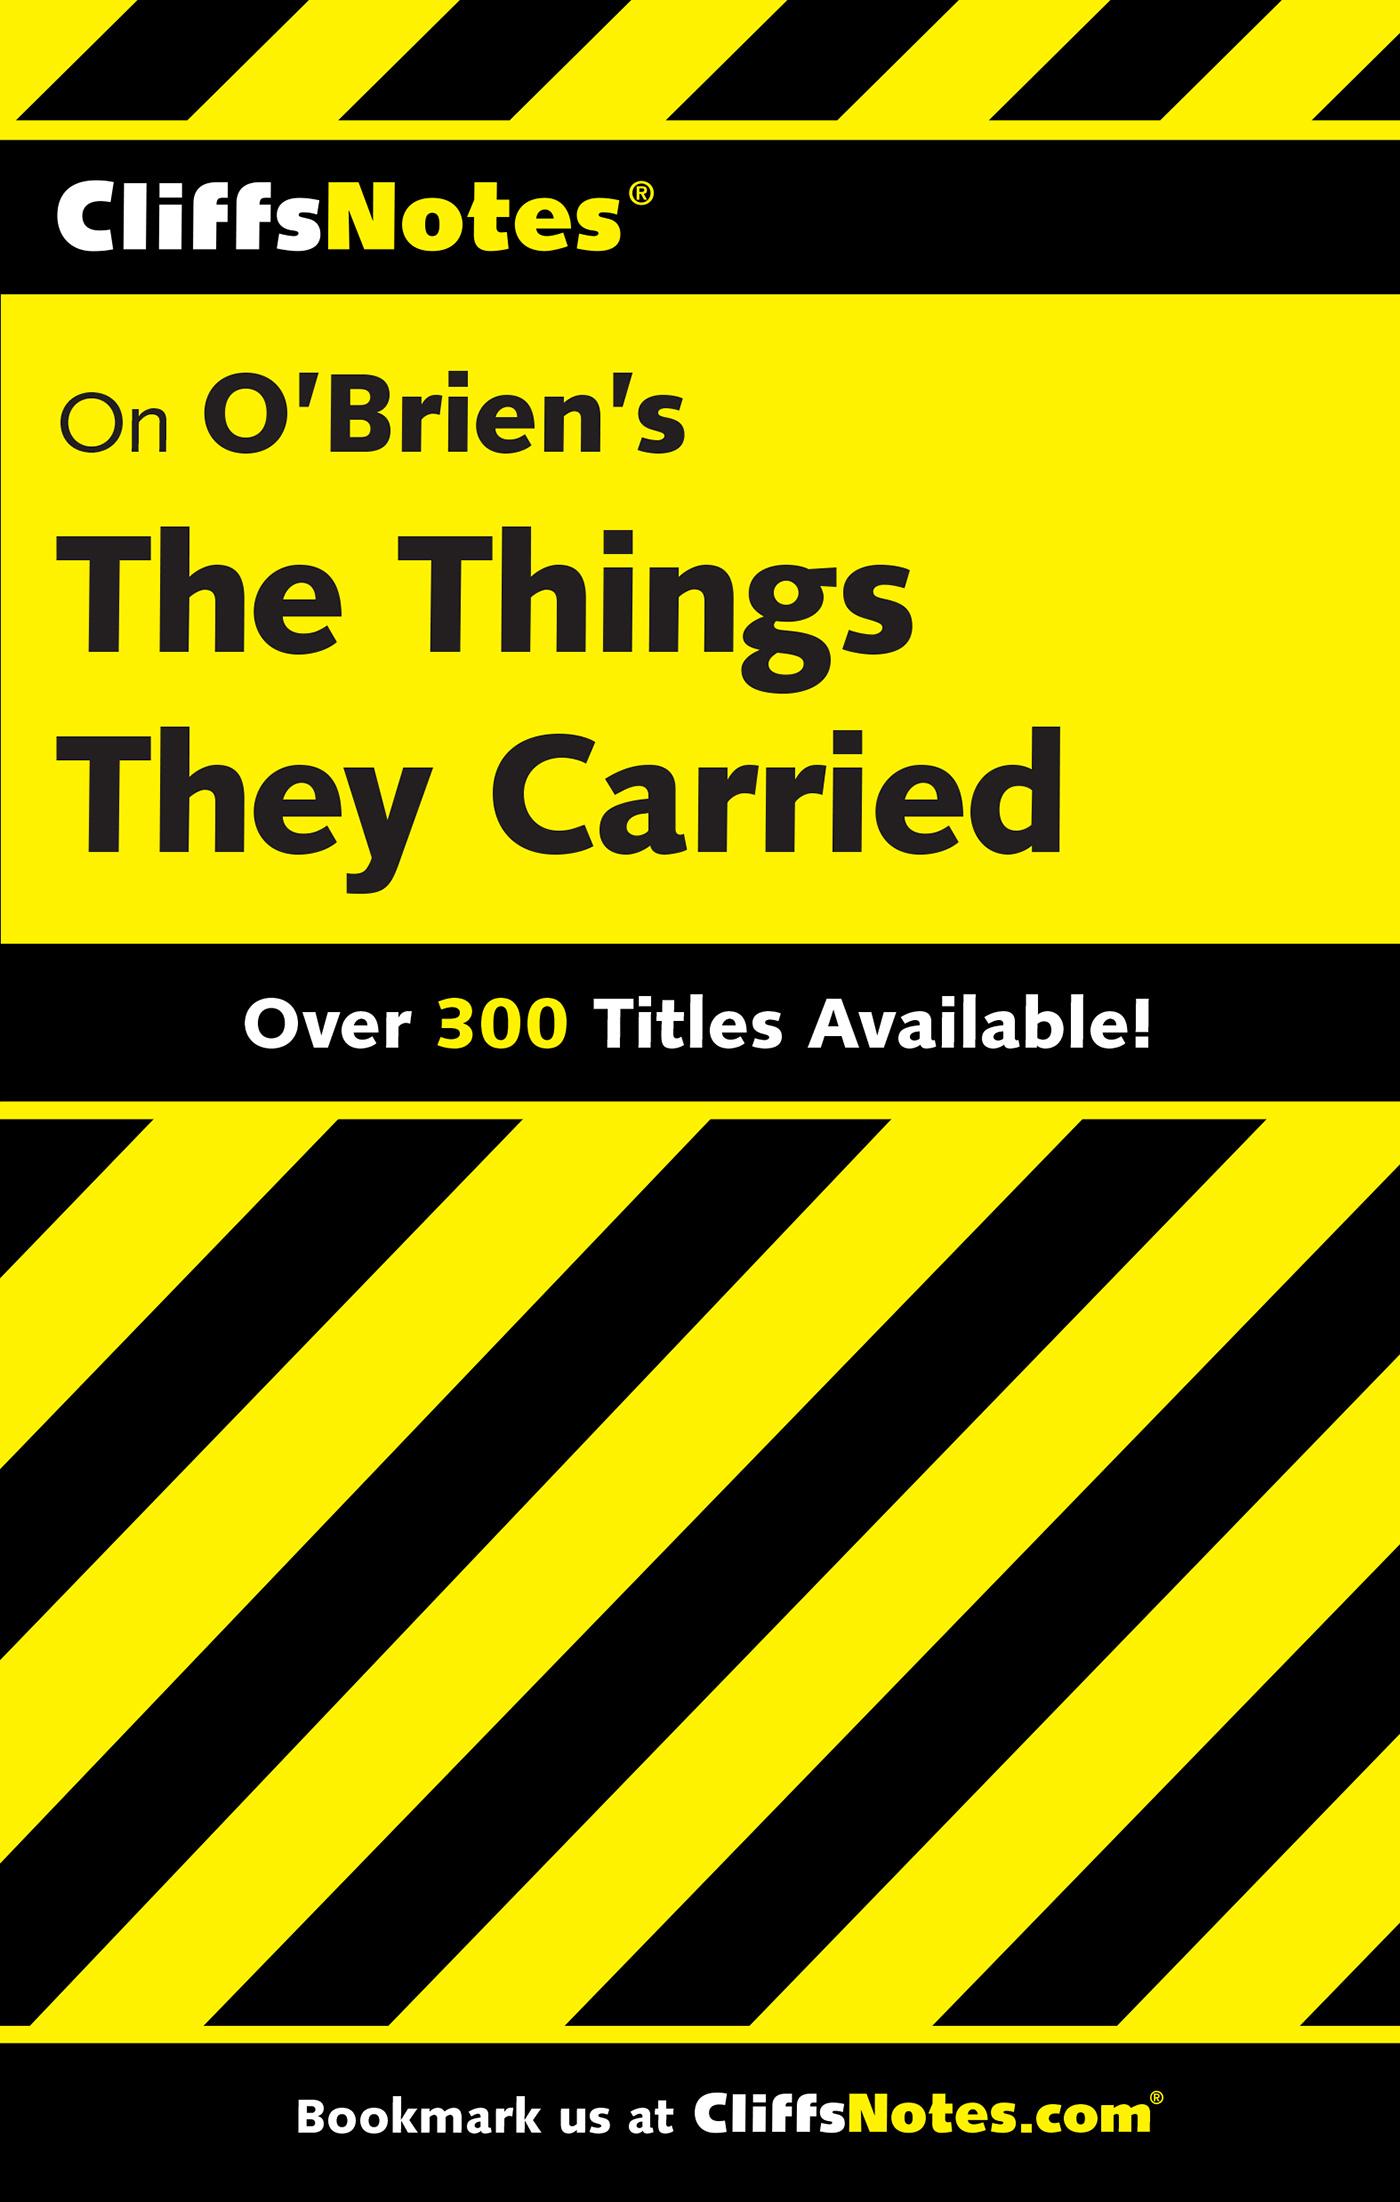 CliffsNotes on O'Brien's The Things They Carried-9780764586682